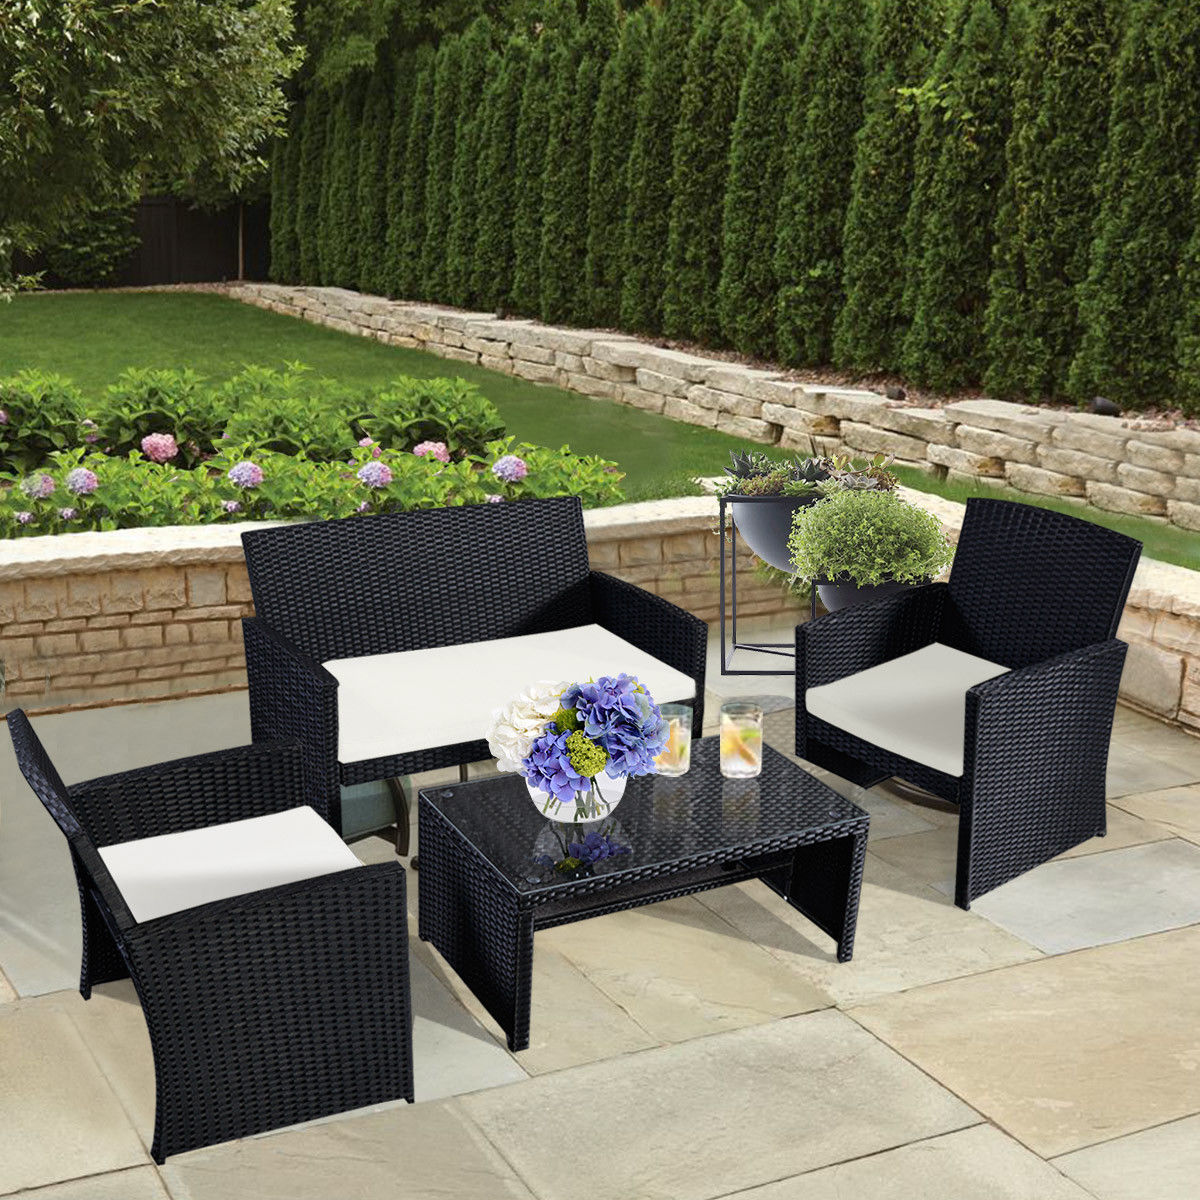 Merveilleux Costway 4 Pc Rattan Patio Furniture Set Garden Lawn Sofa Wicker Cushioned  Seat Black